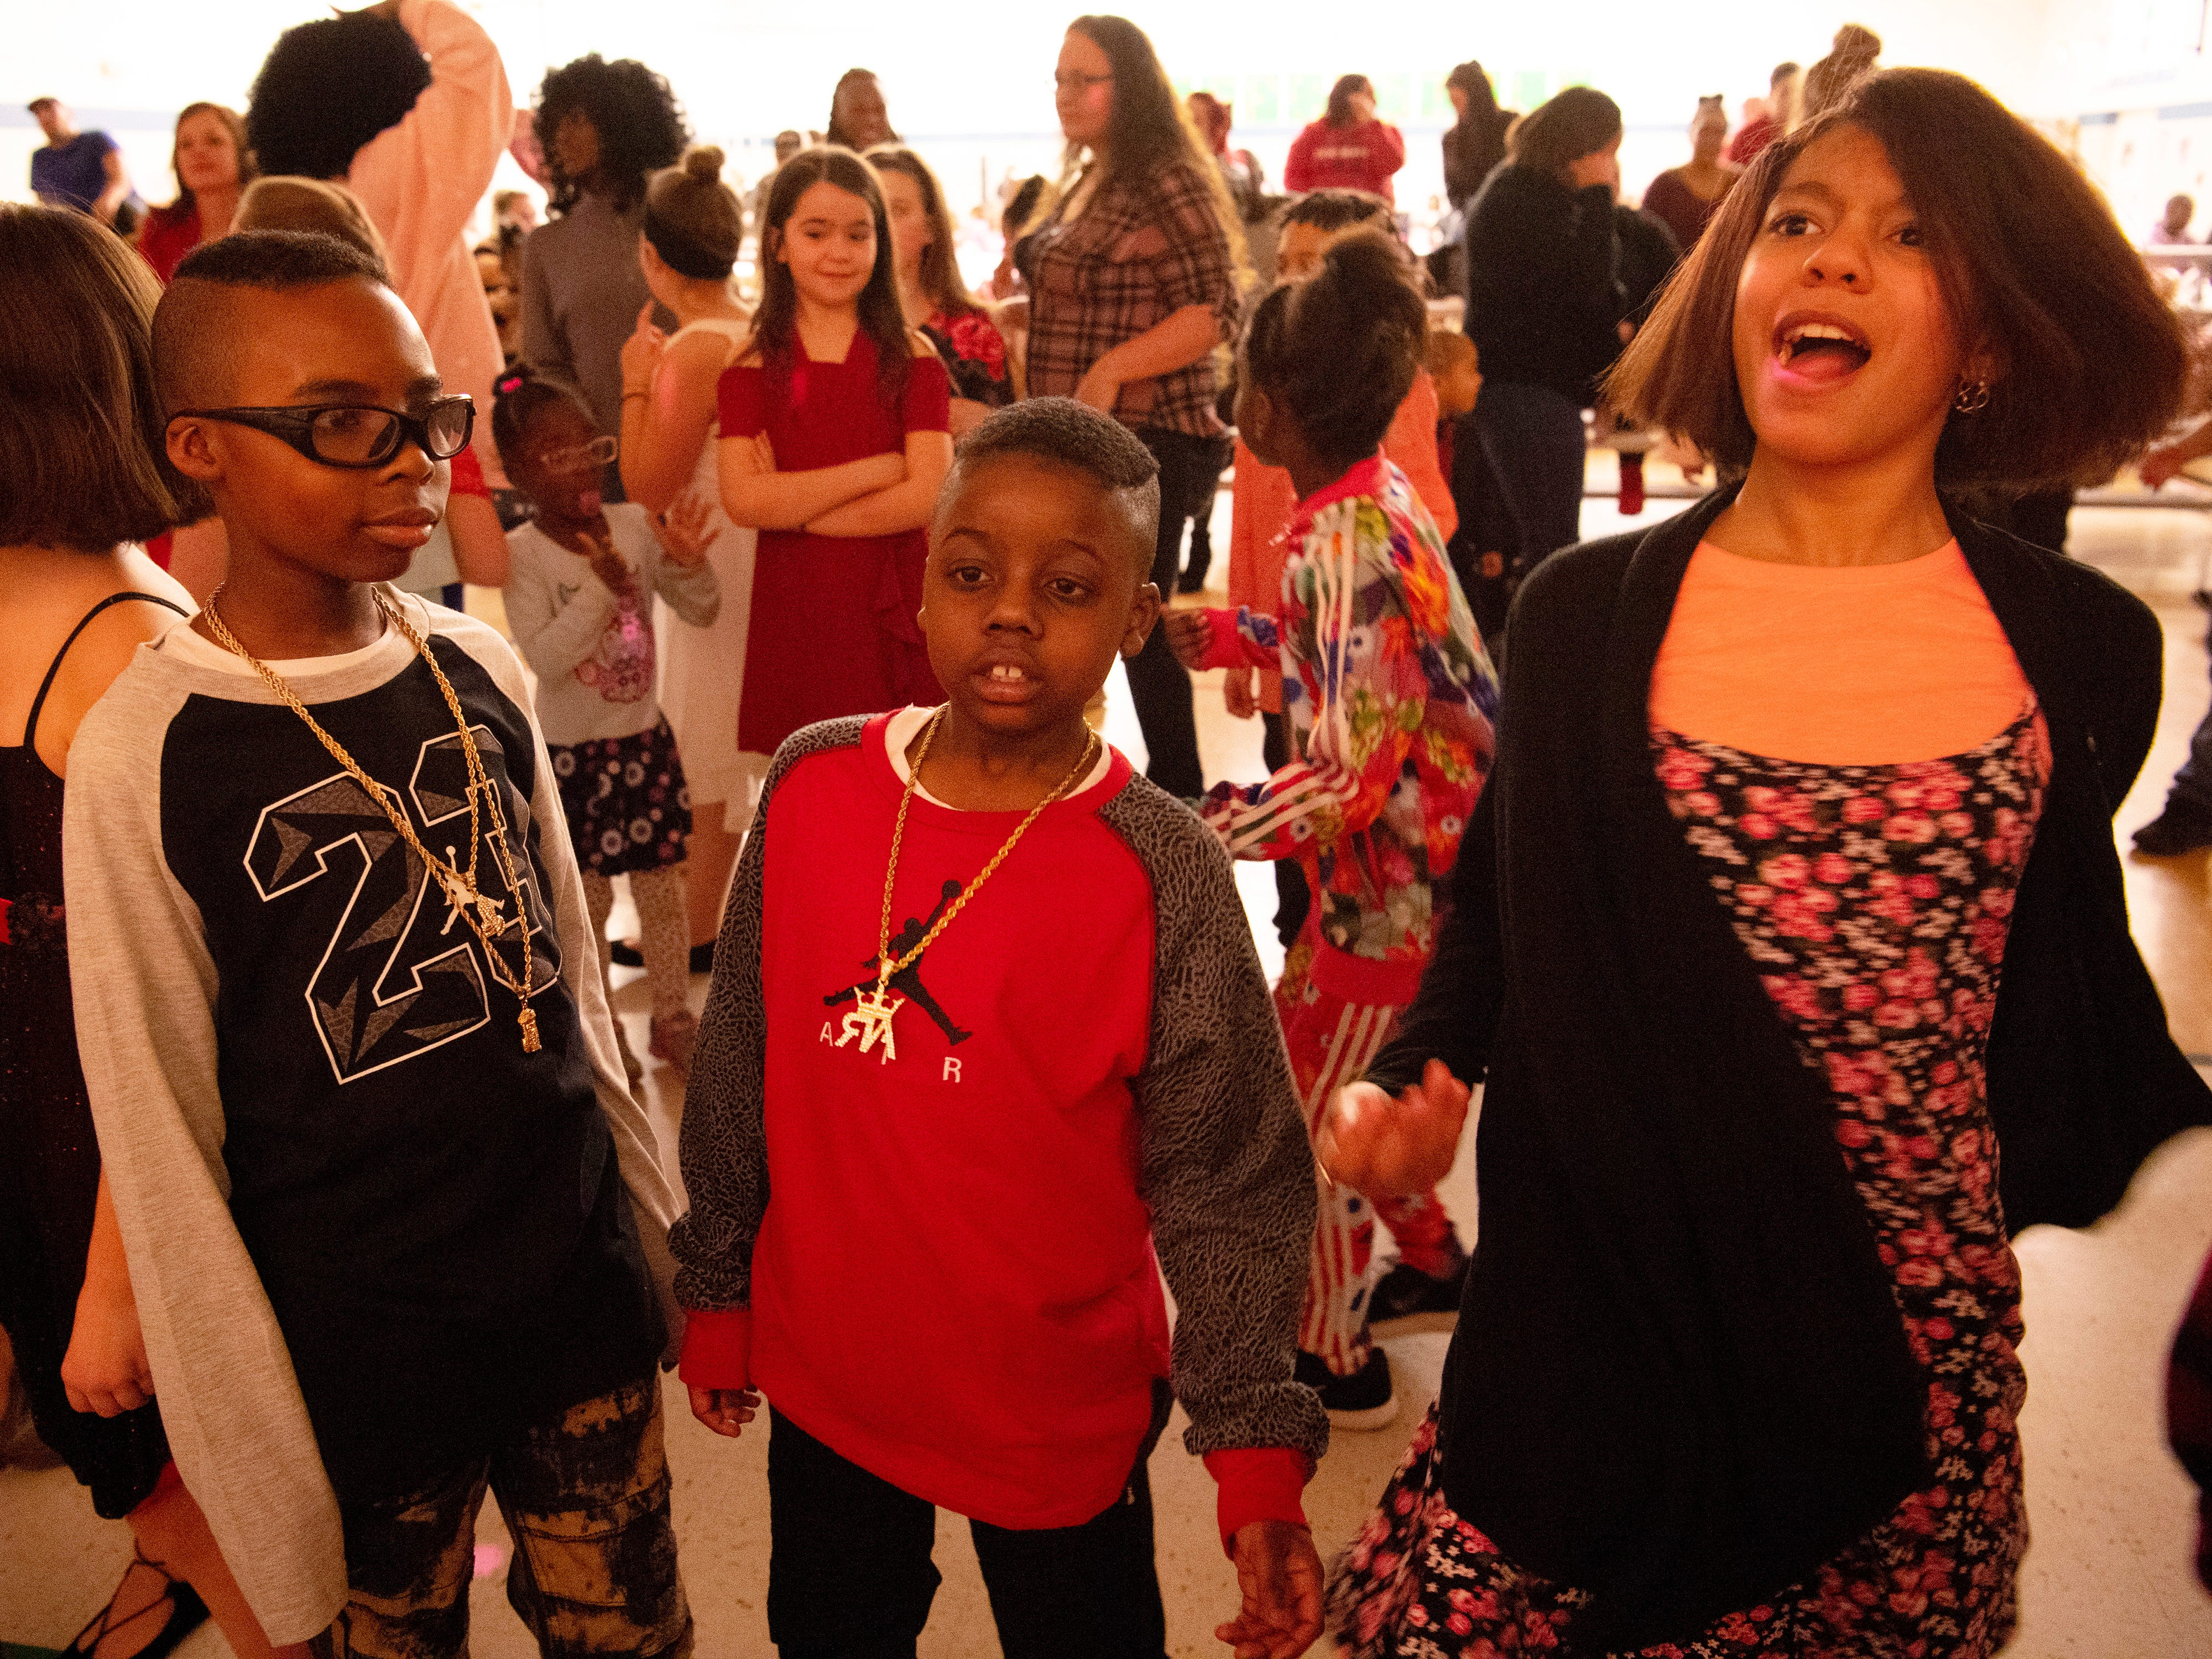 """Caze Elementary School students dance to """"The Wobble"""" at the Sweetheart Dance Tuesday night."""